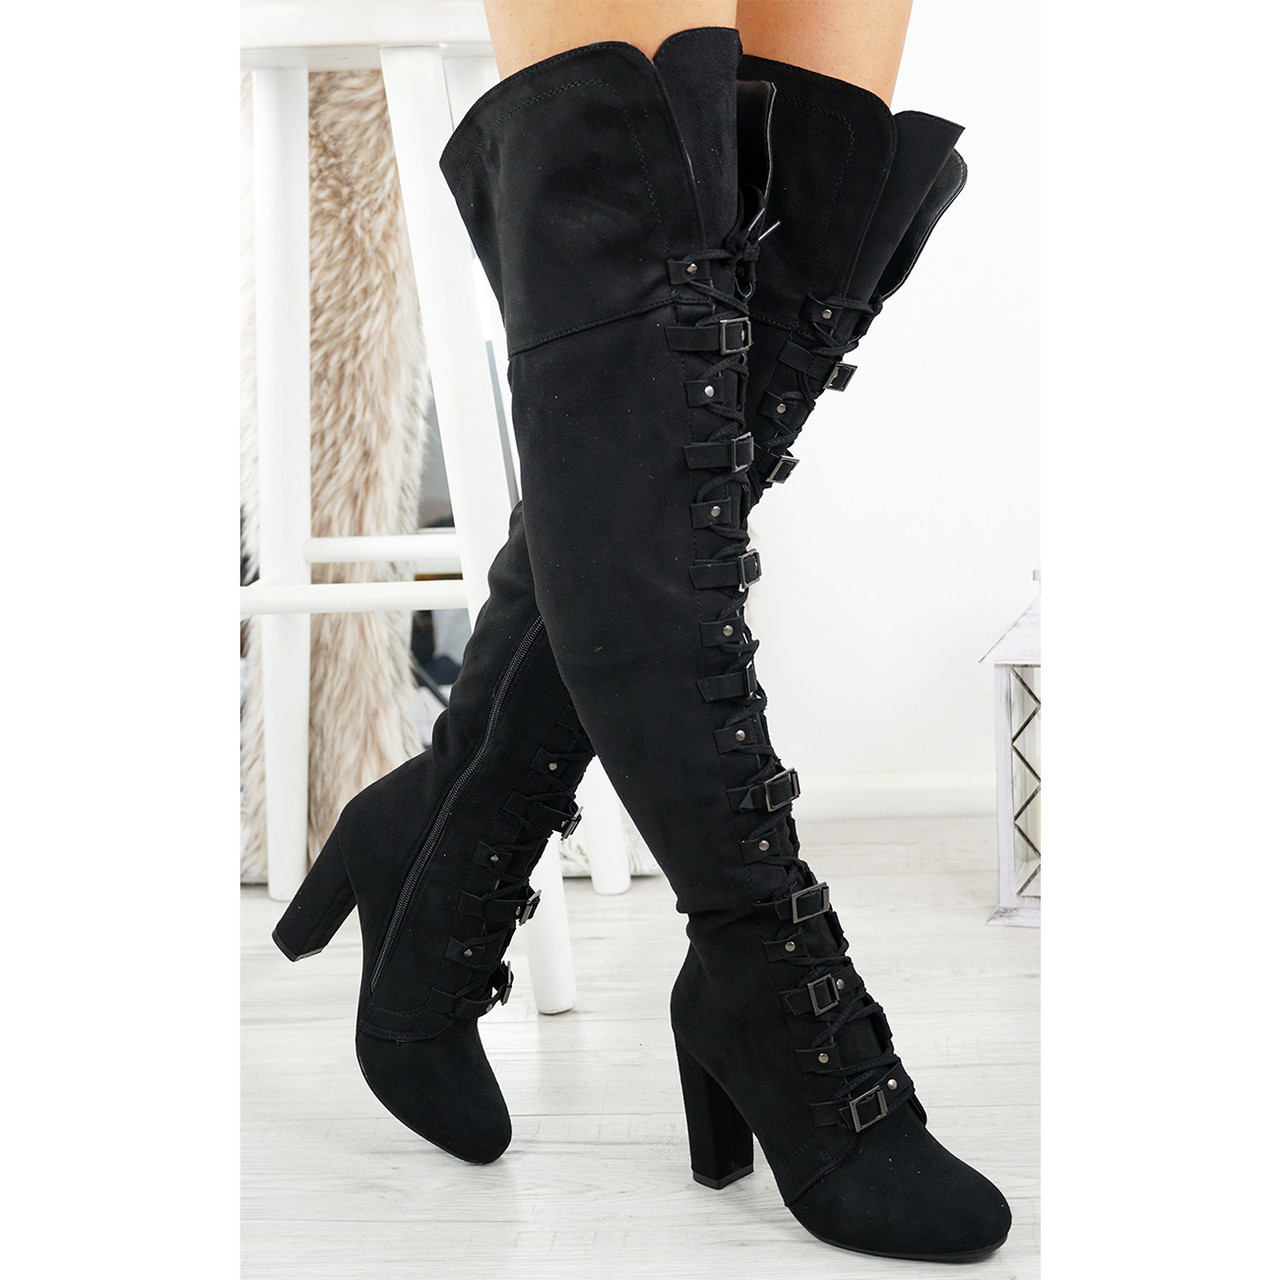 f2d76b078d Womens Ladies Over The Knee Buckle Boots Zip High Block Heel ...